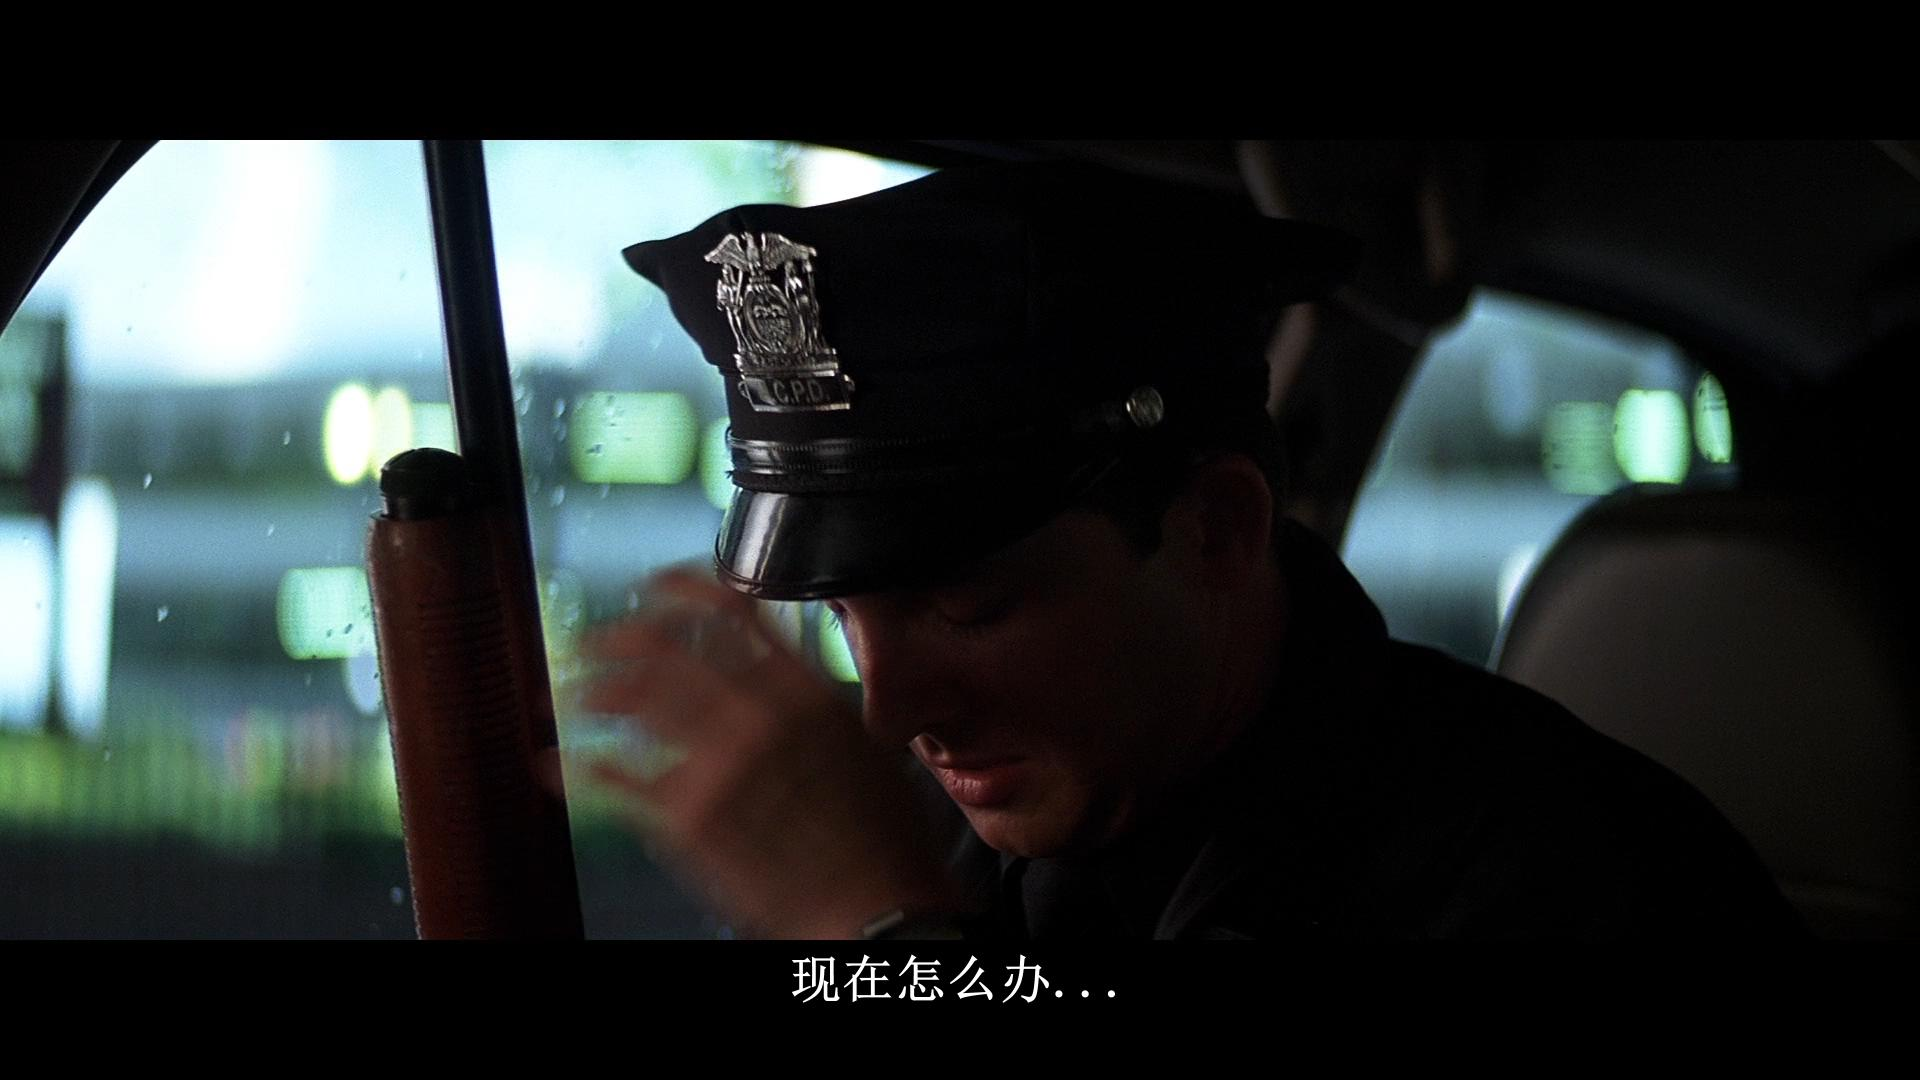 [蝙蝠侠前传2:黑暗骑士].The.Dark.Knight.2008.BDRip.1080p.x264.DTS.Audio-CHD.D3_2.jpg